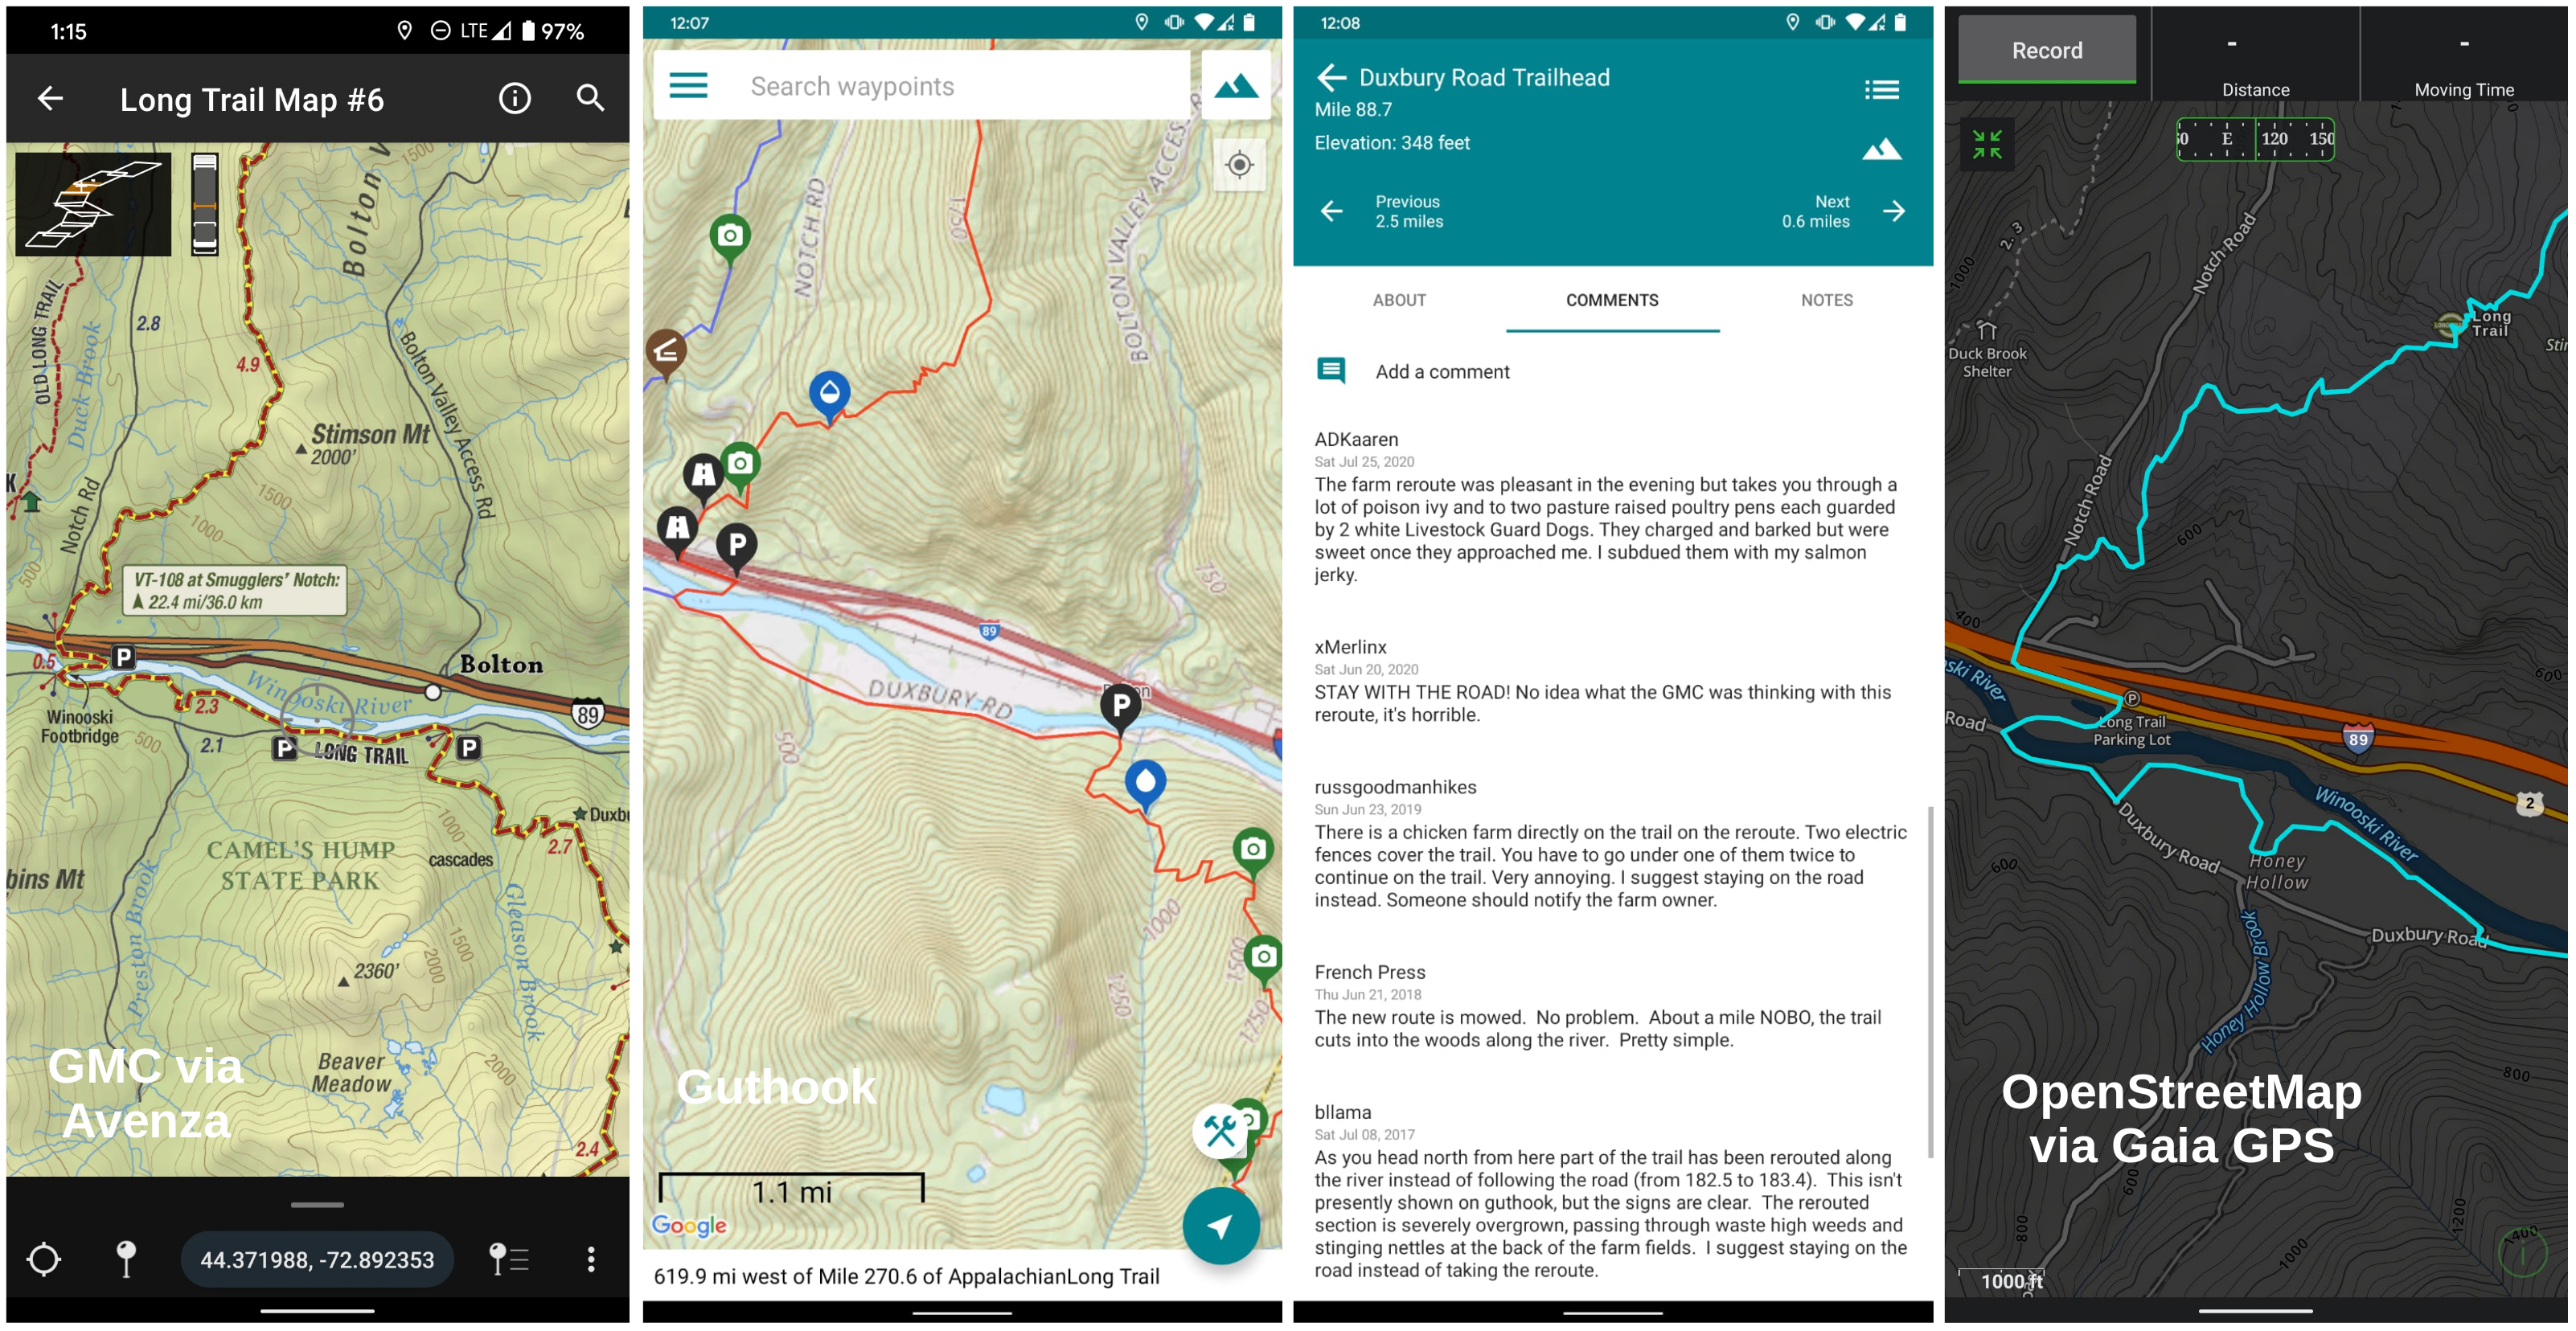 The big three Long Trail maps side-by-side: GMC via Avenza, Guthook Guides, and OpenStreetMap via Gaia GPS.